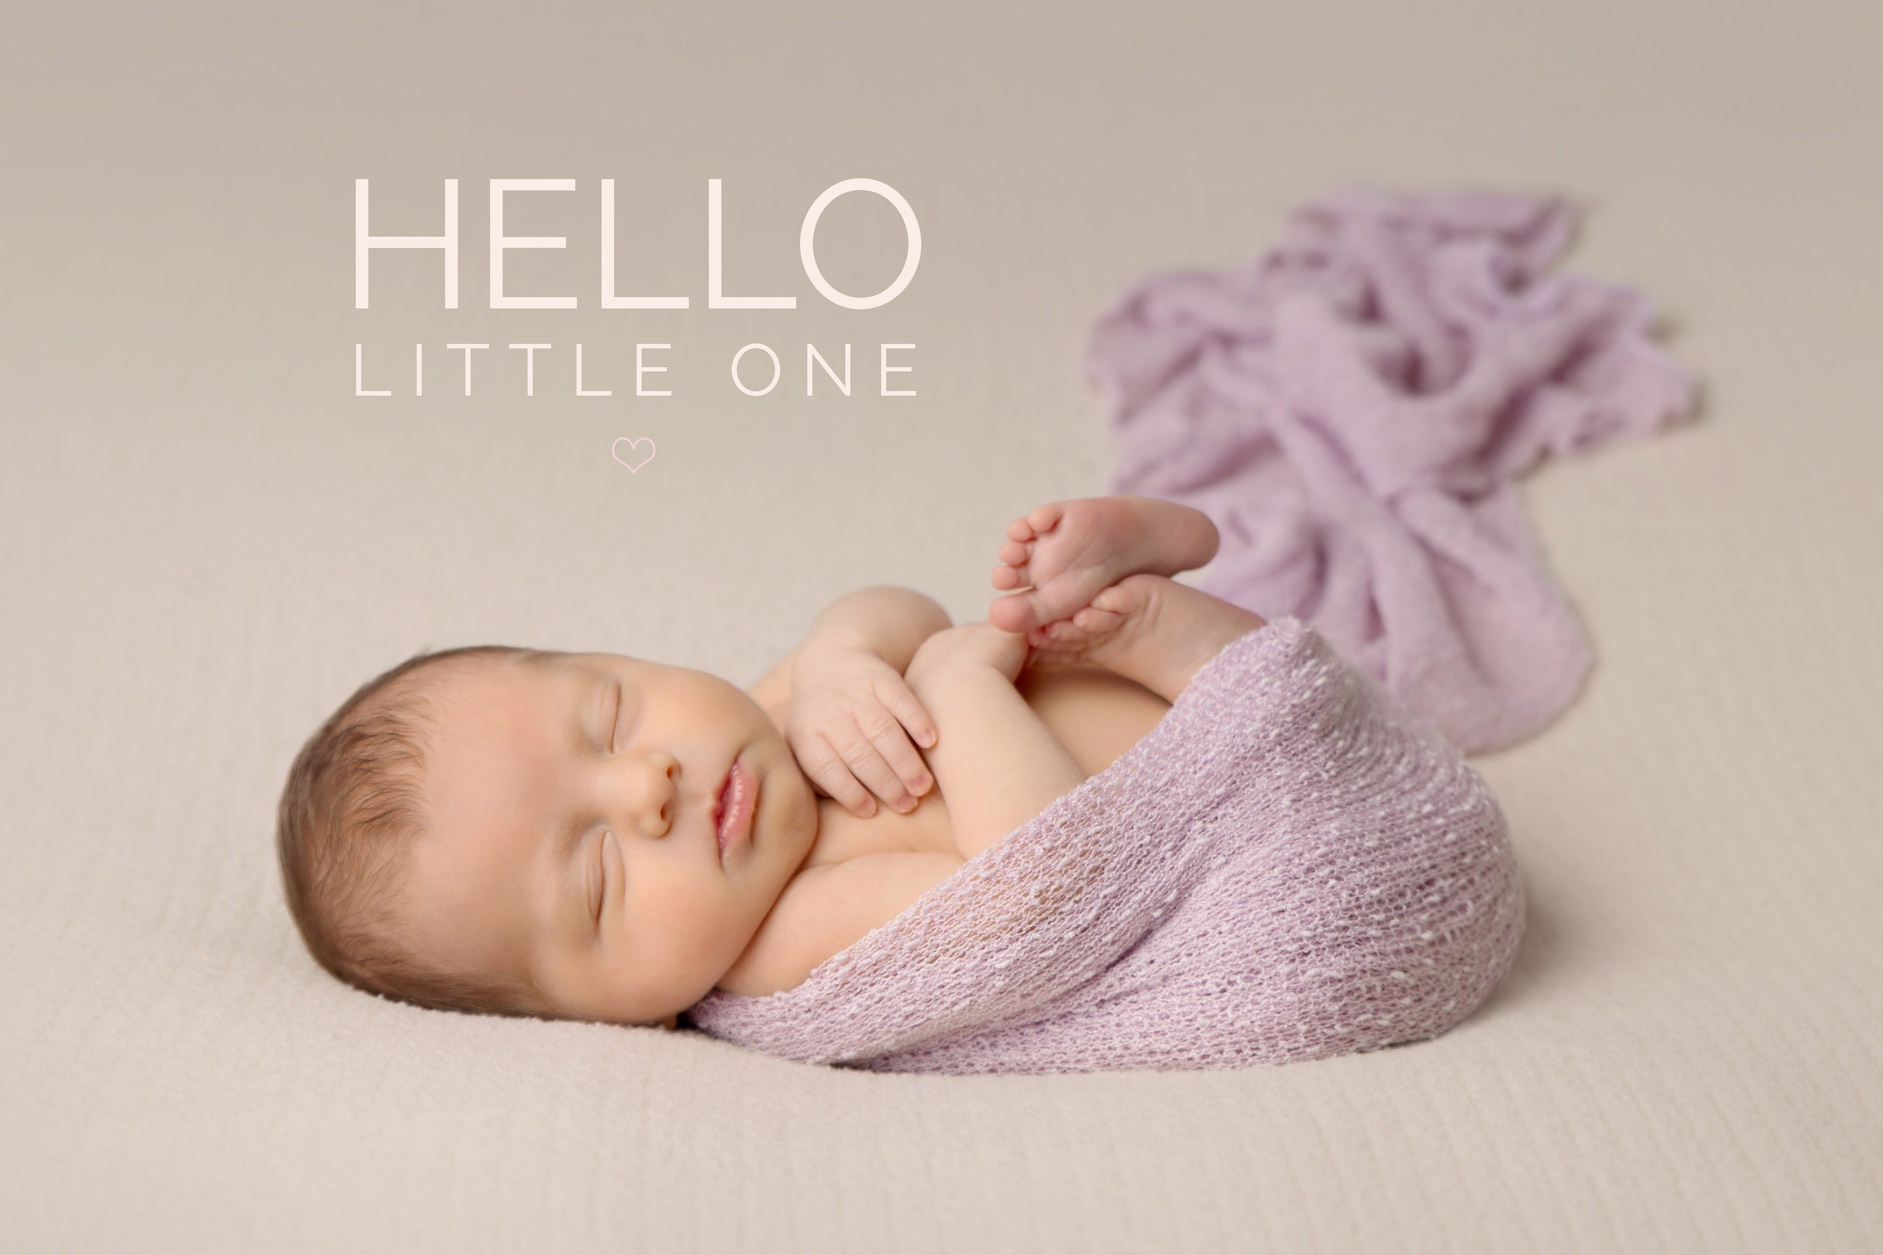 newborn girl laying sleeping on her back wrapped in a pink wrap on a cream blanket.  'hello little one' written in text on the image